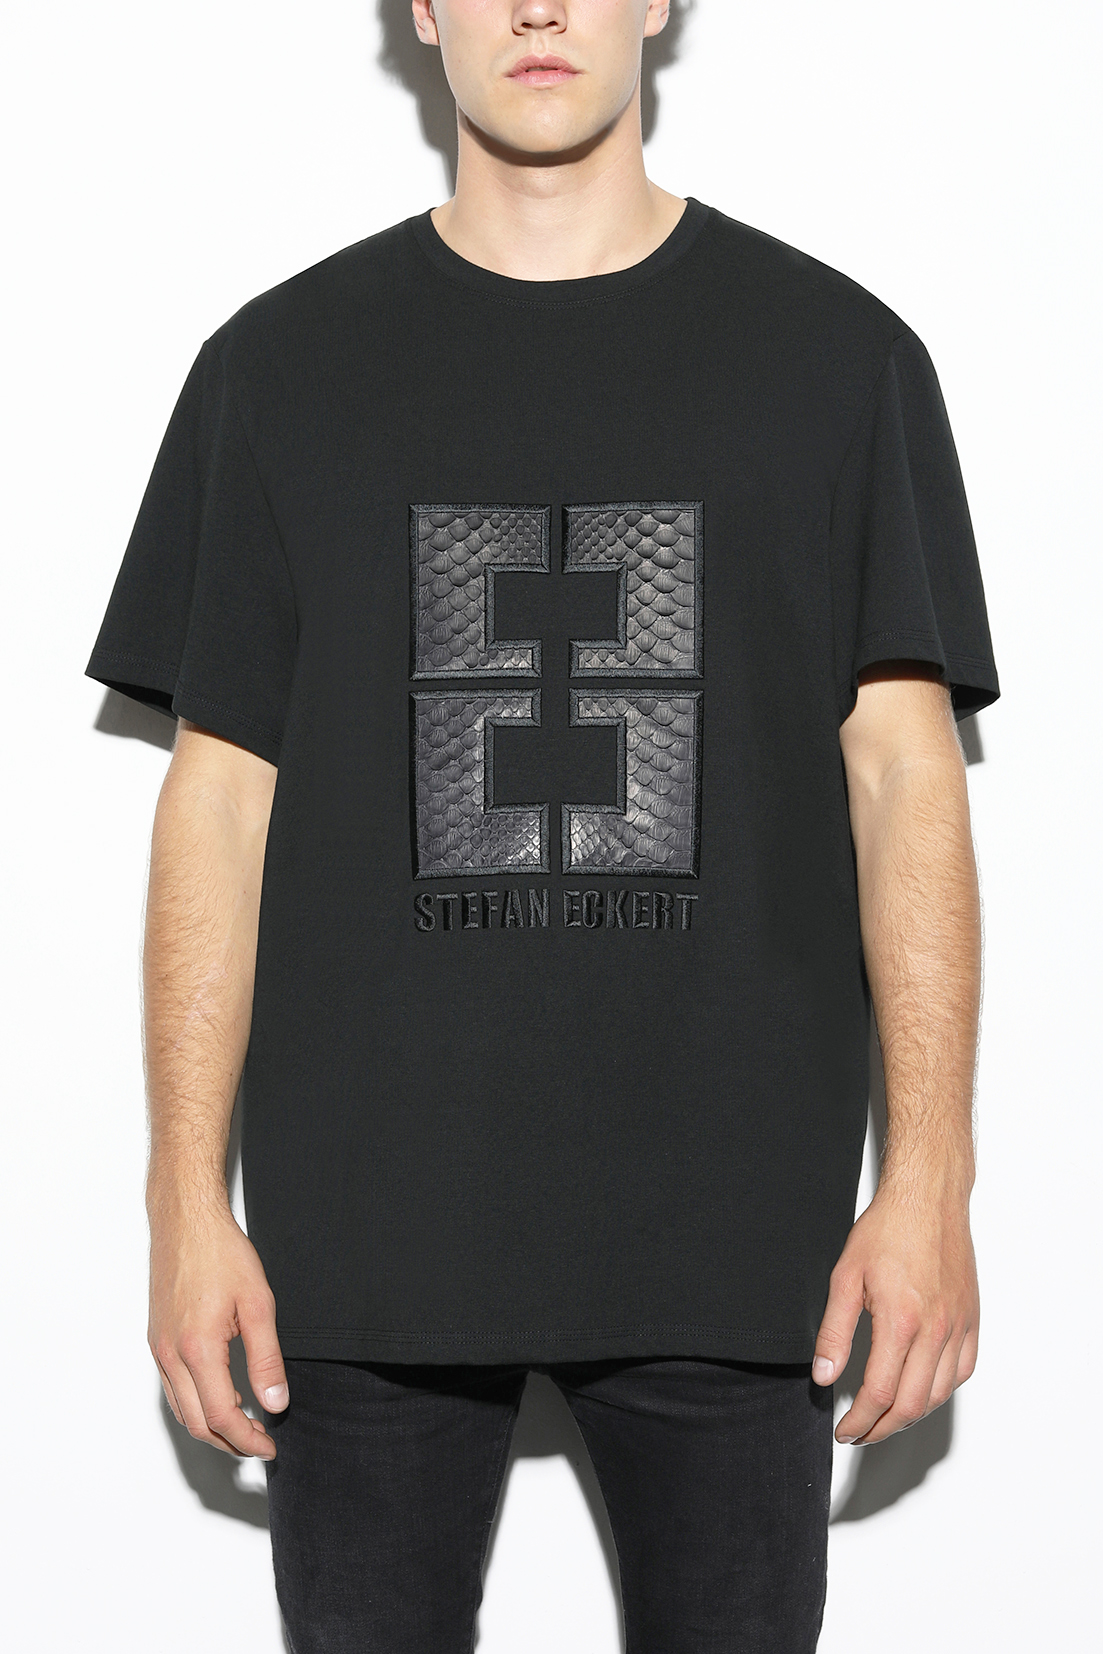 Logo T-Shirt for women and men by designer Stefan Eckert with embroidery of black python leather, made of organic cotton, sustainably produced in Germany